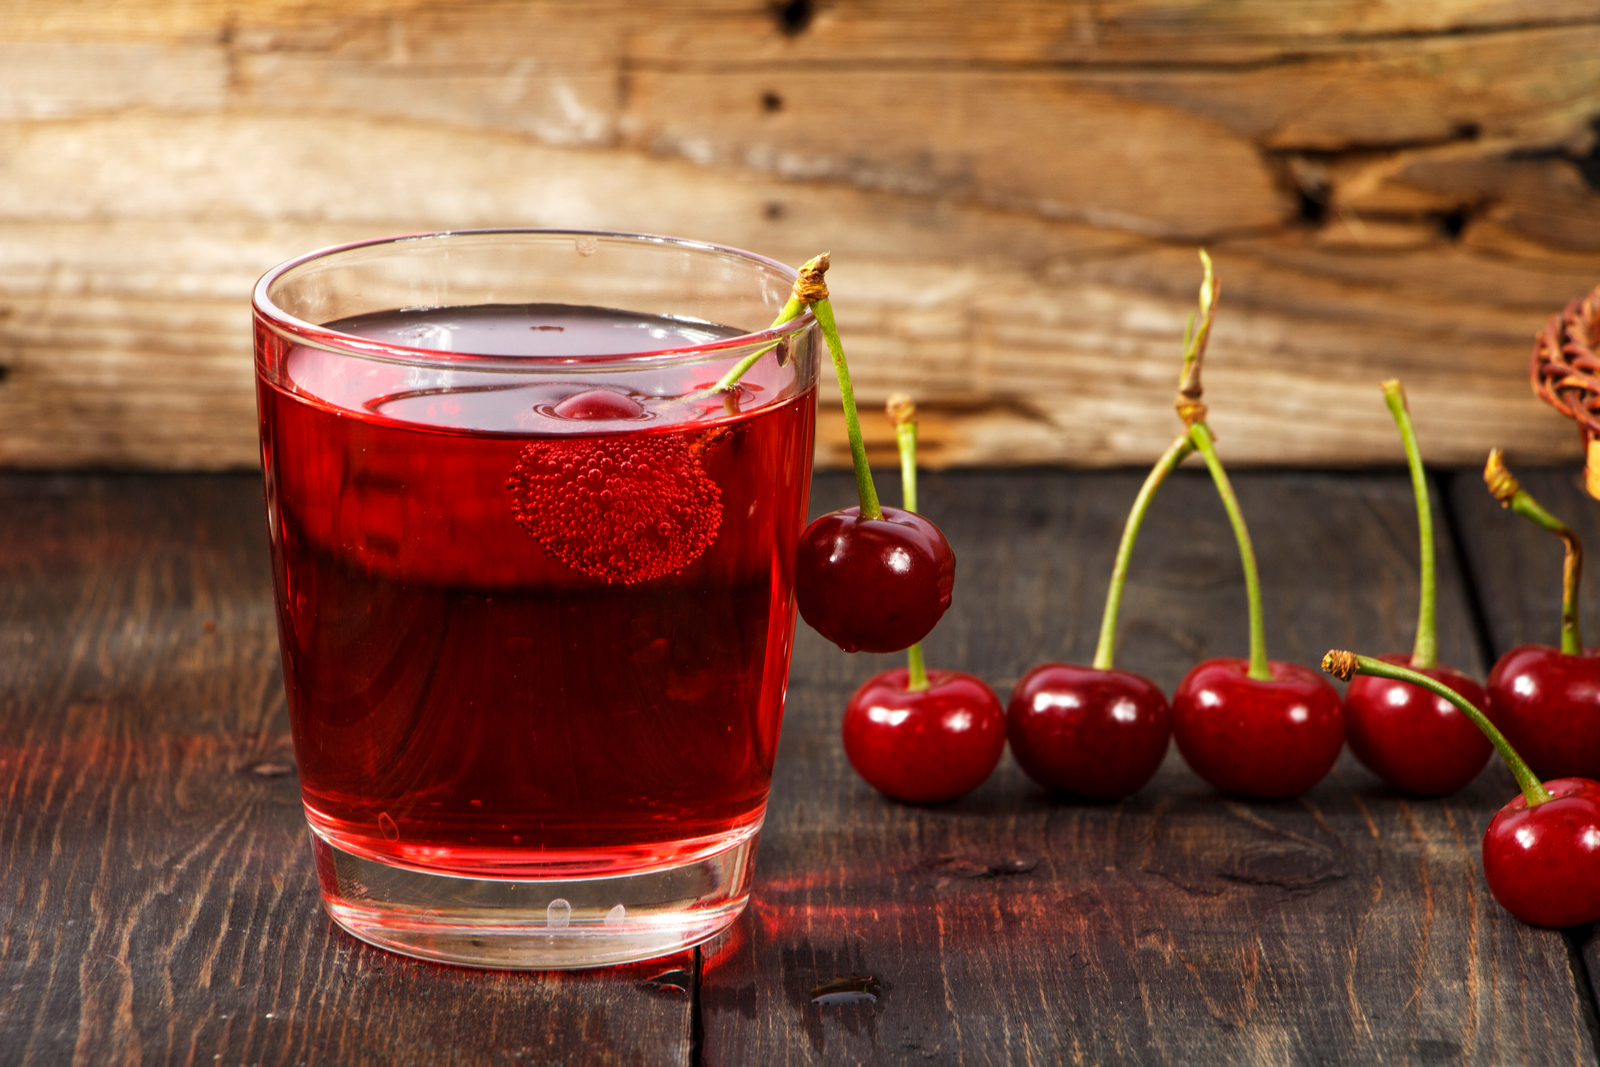 Tart Cherry Kiwi Apple Drink | 3-Day Juice Cleanse Recipes: A Meal-by-Meal Guide